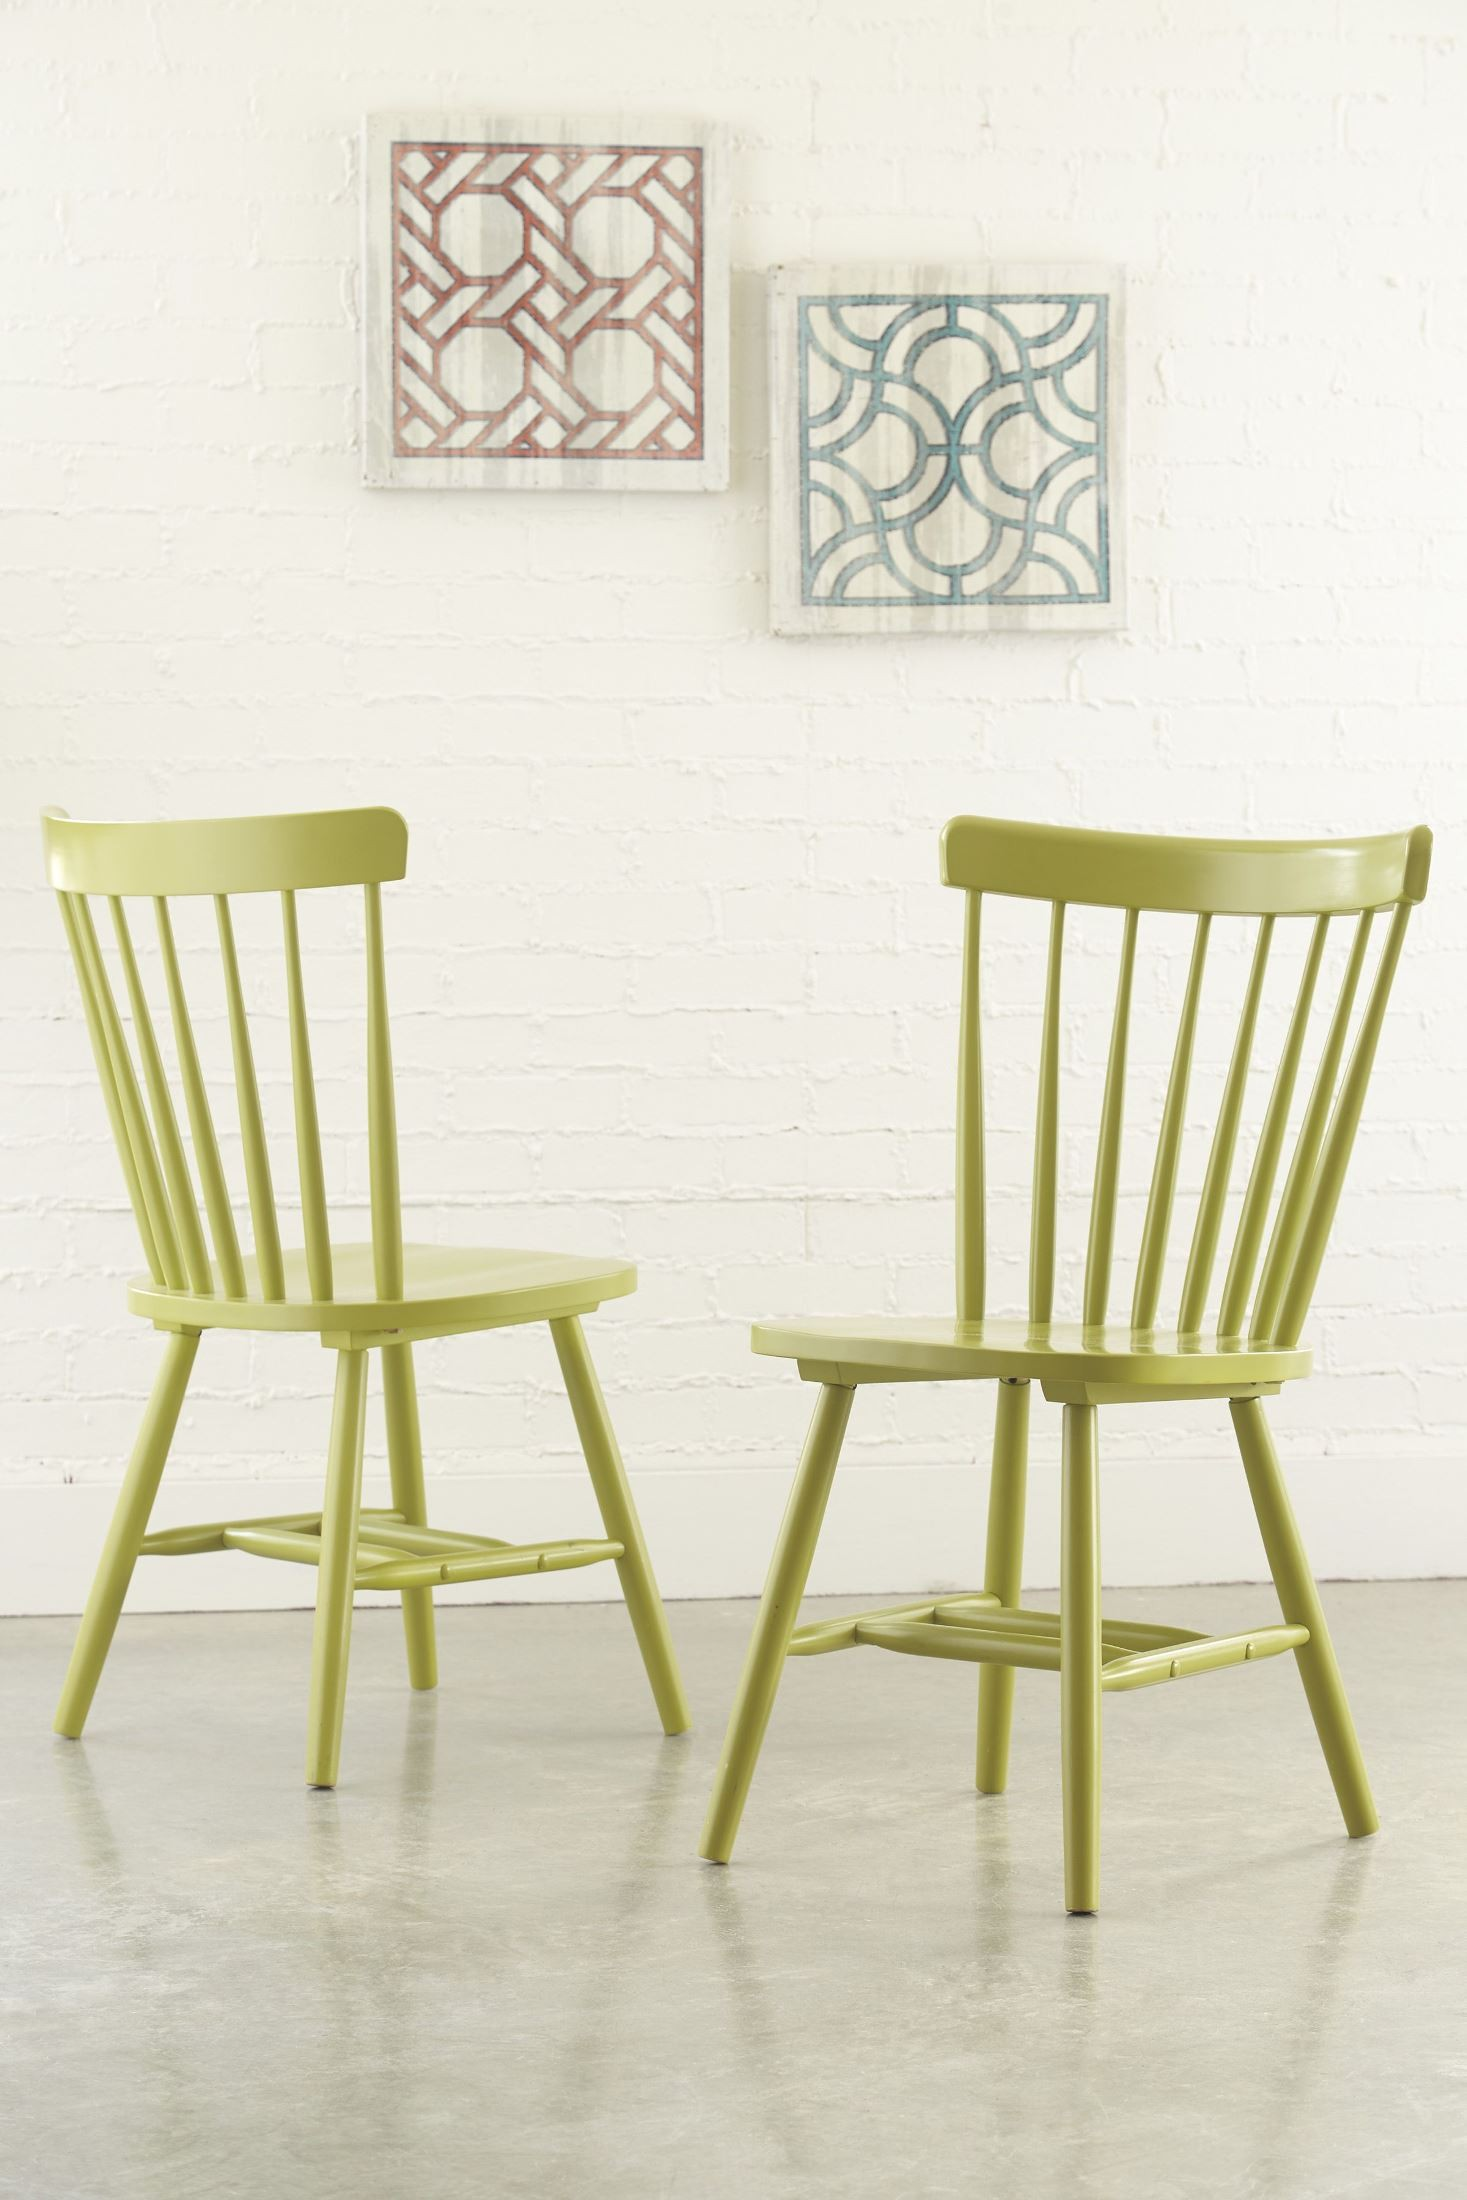 Bantilly Green Dining Room Chair Set 2 from Ashley